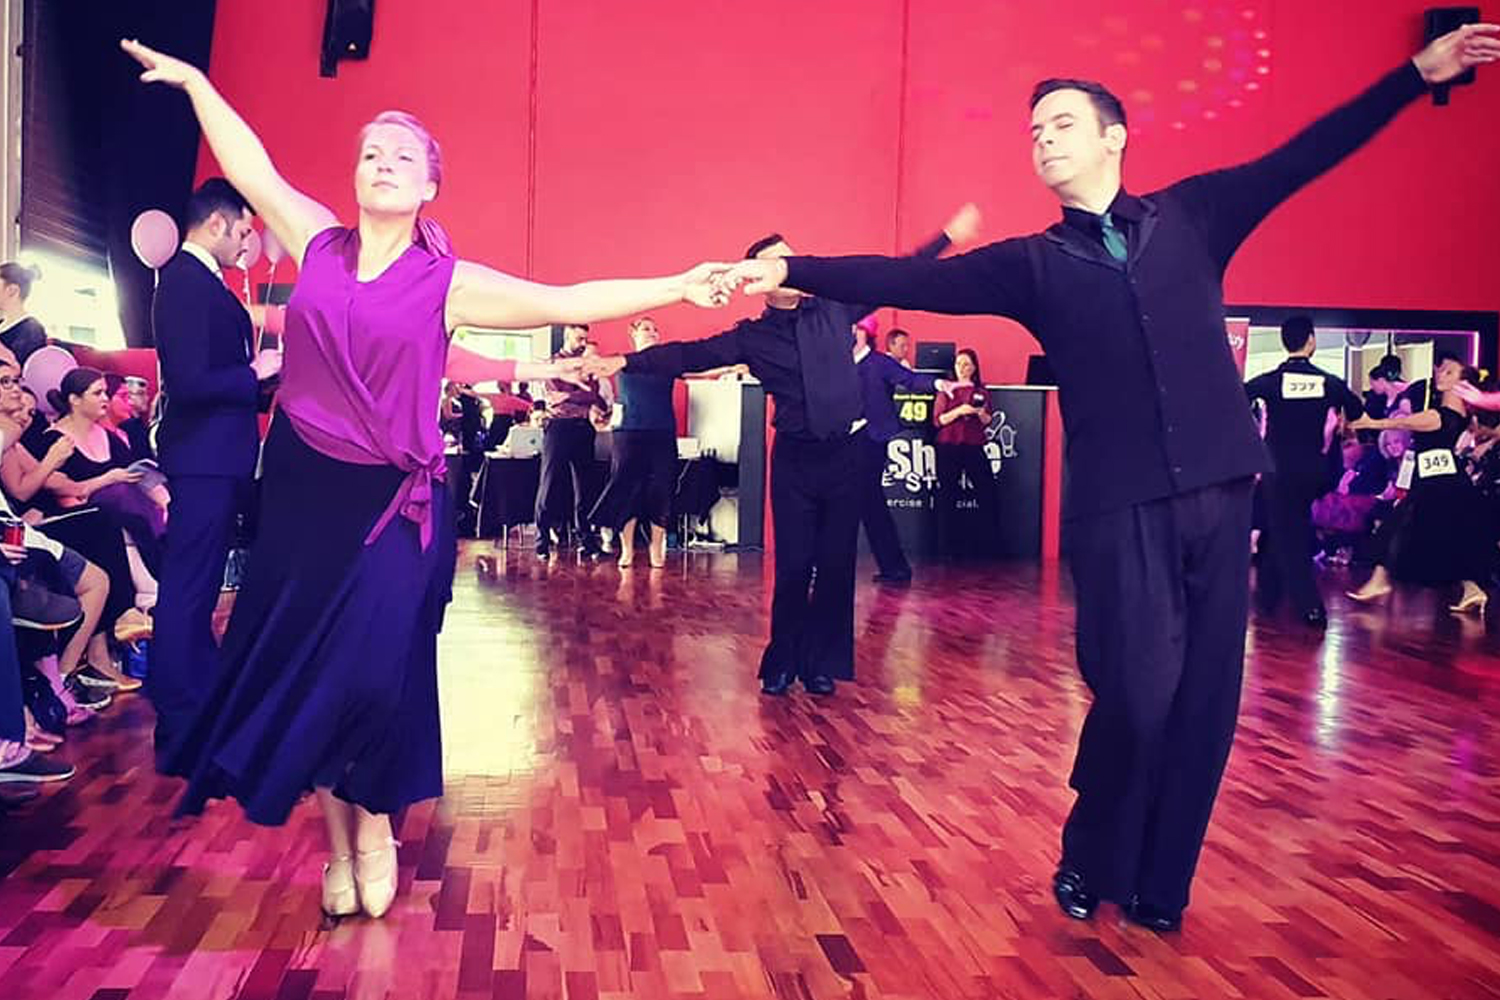 Catering for beginners through to advanced dancers